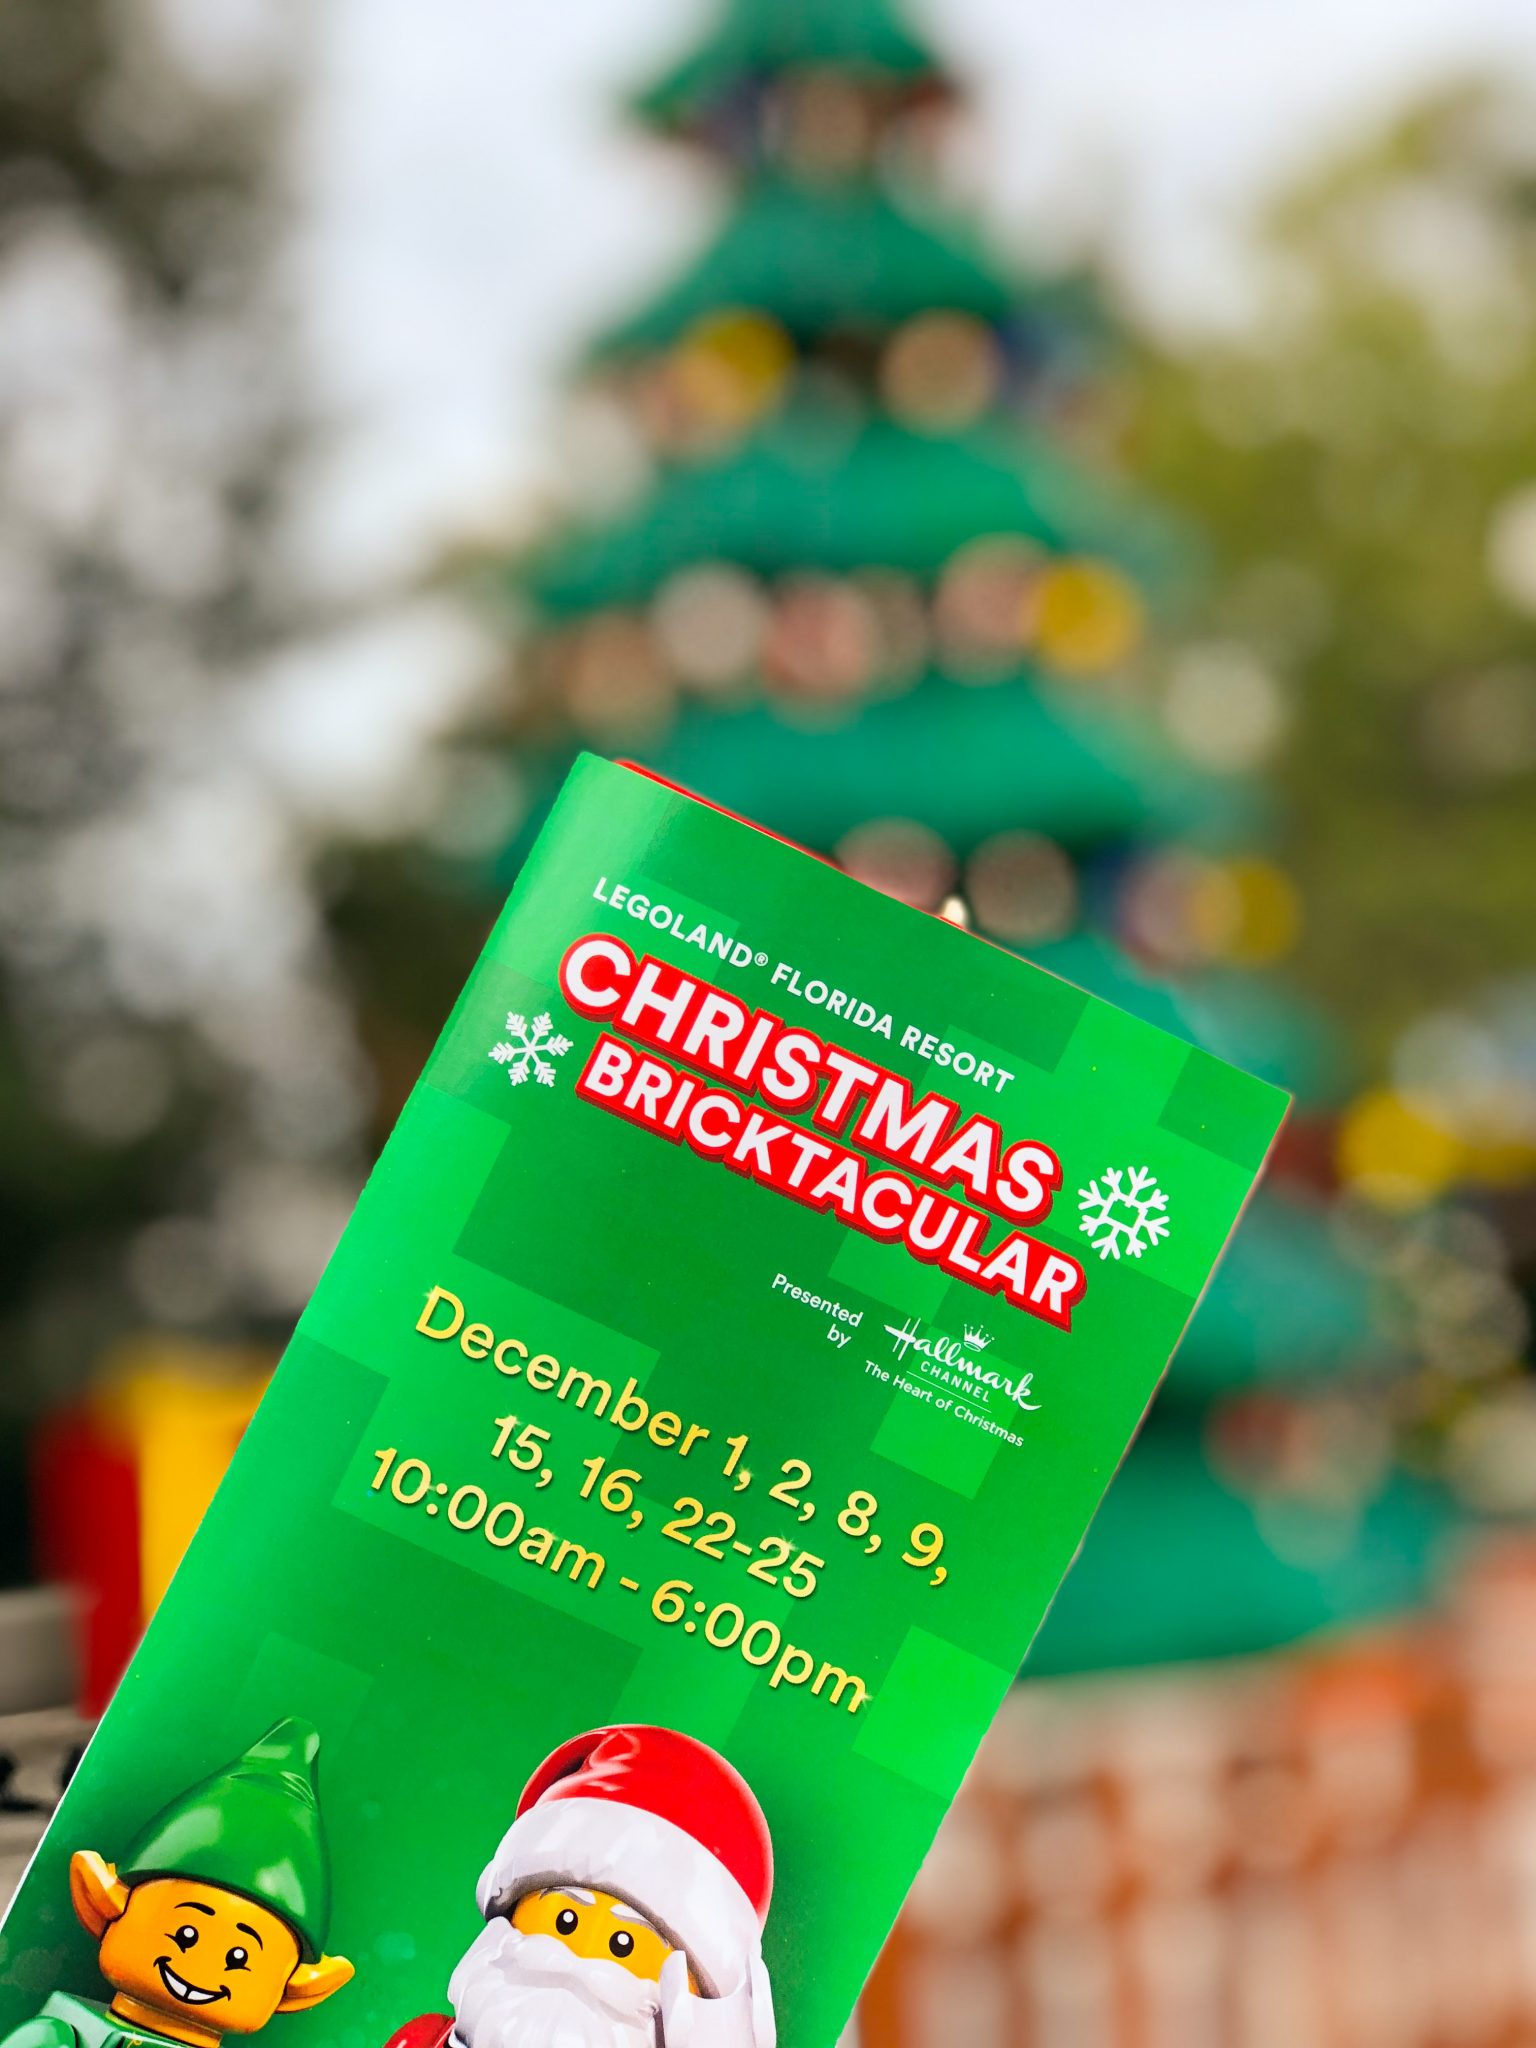 LEGOLAND Florida Christmas Bricktacular #BuiltForChildren